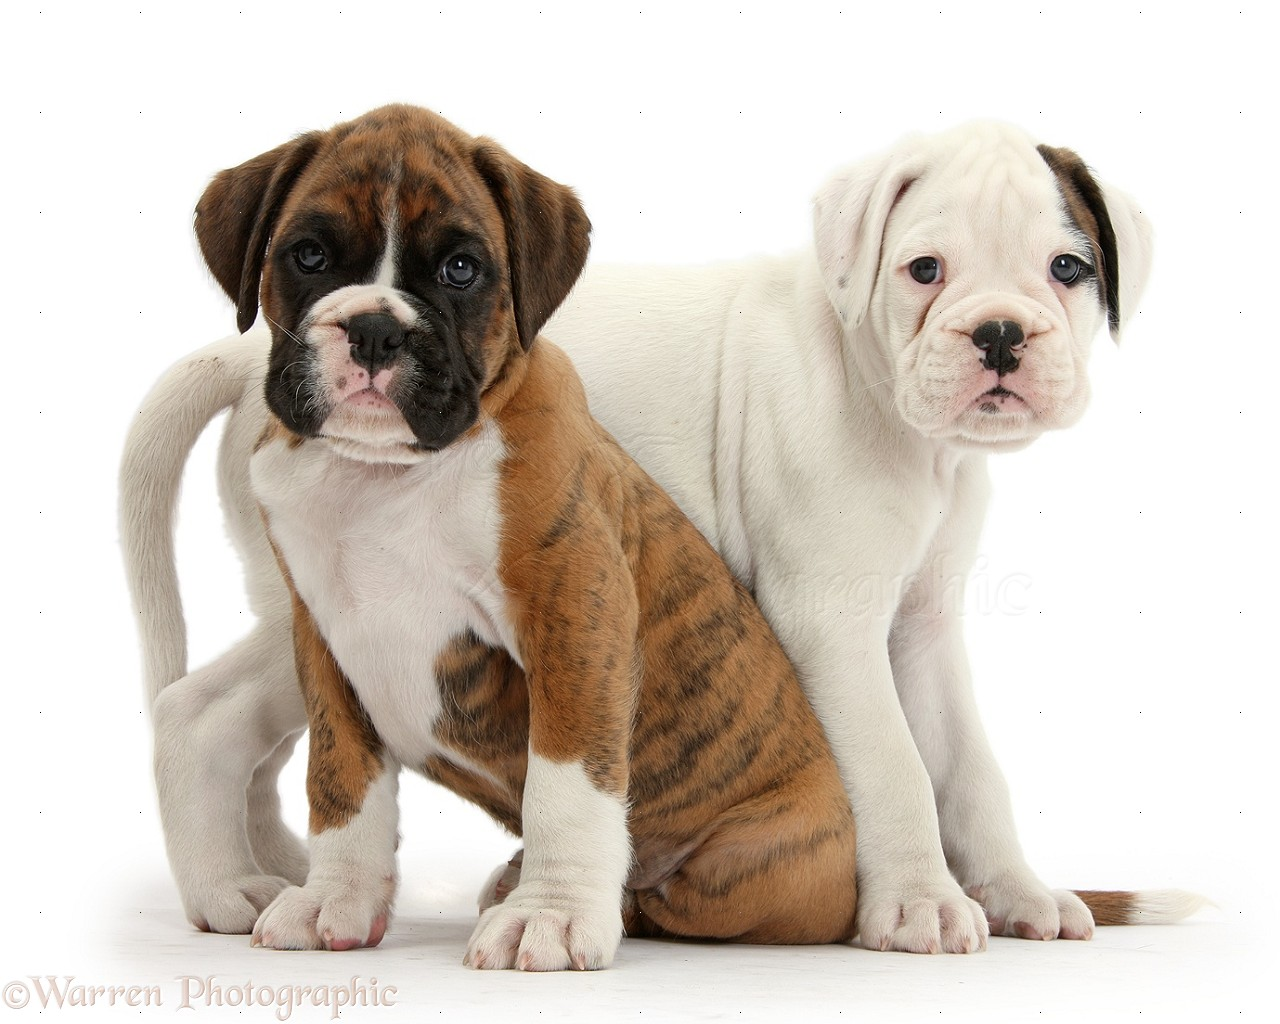 Dogs Two Boxer Puppies Together Photo Wp36051